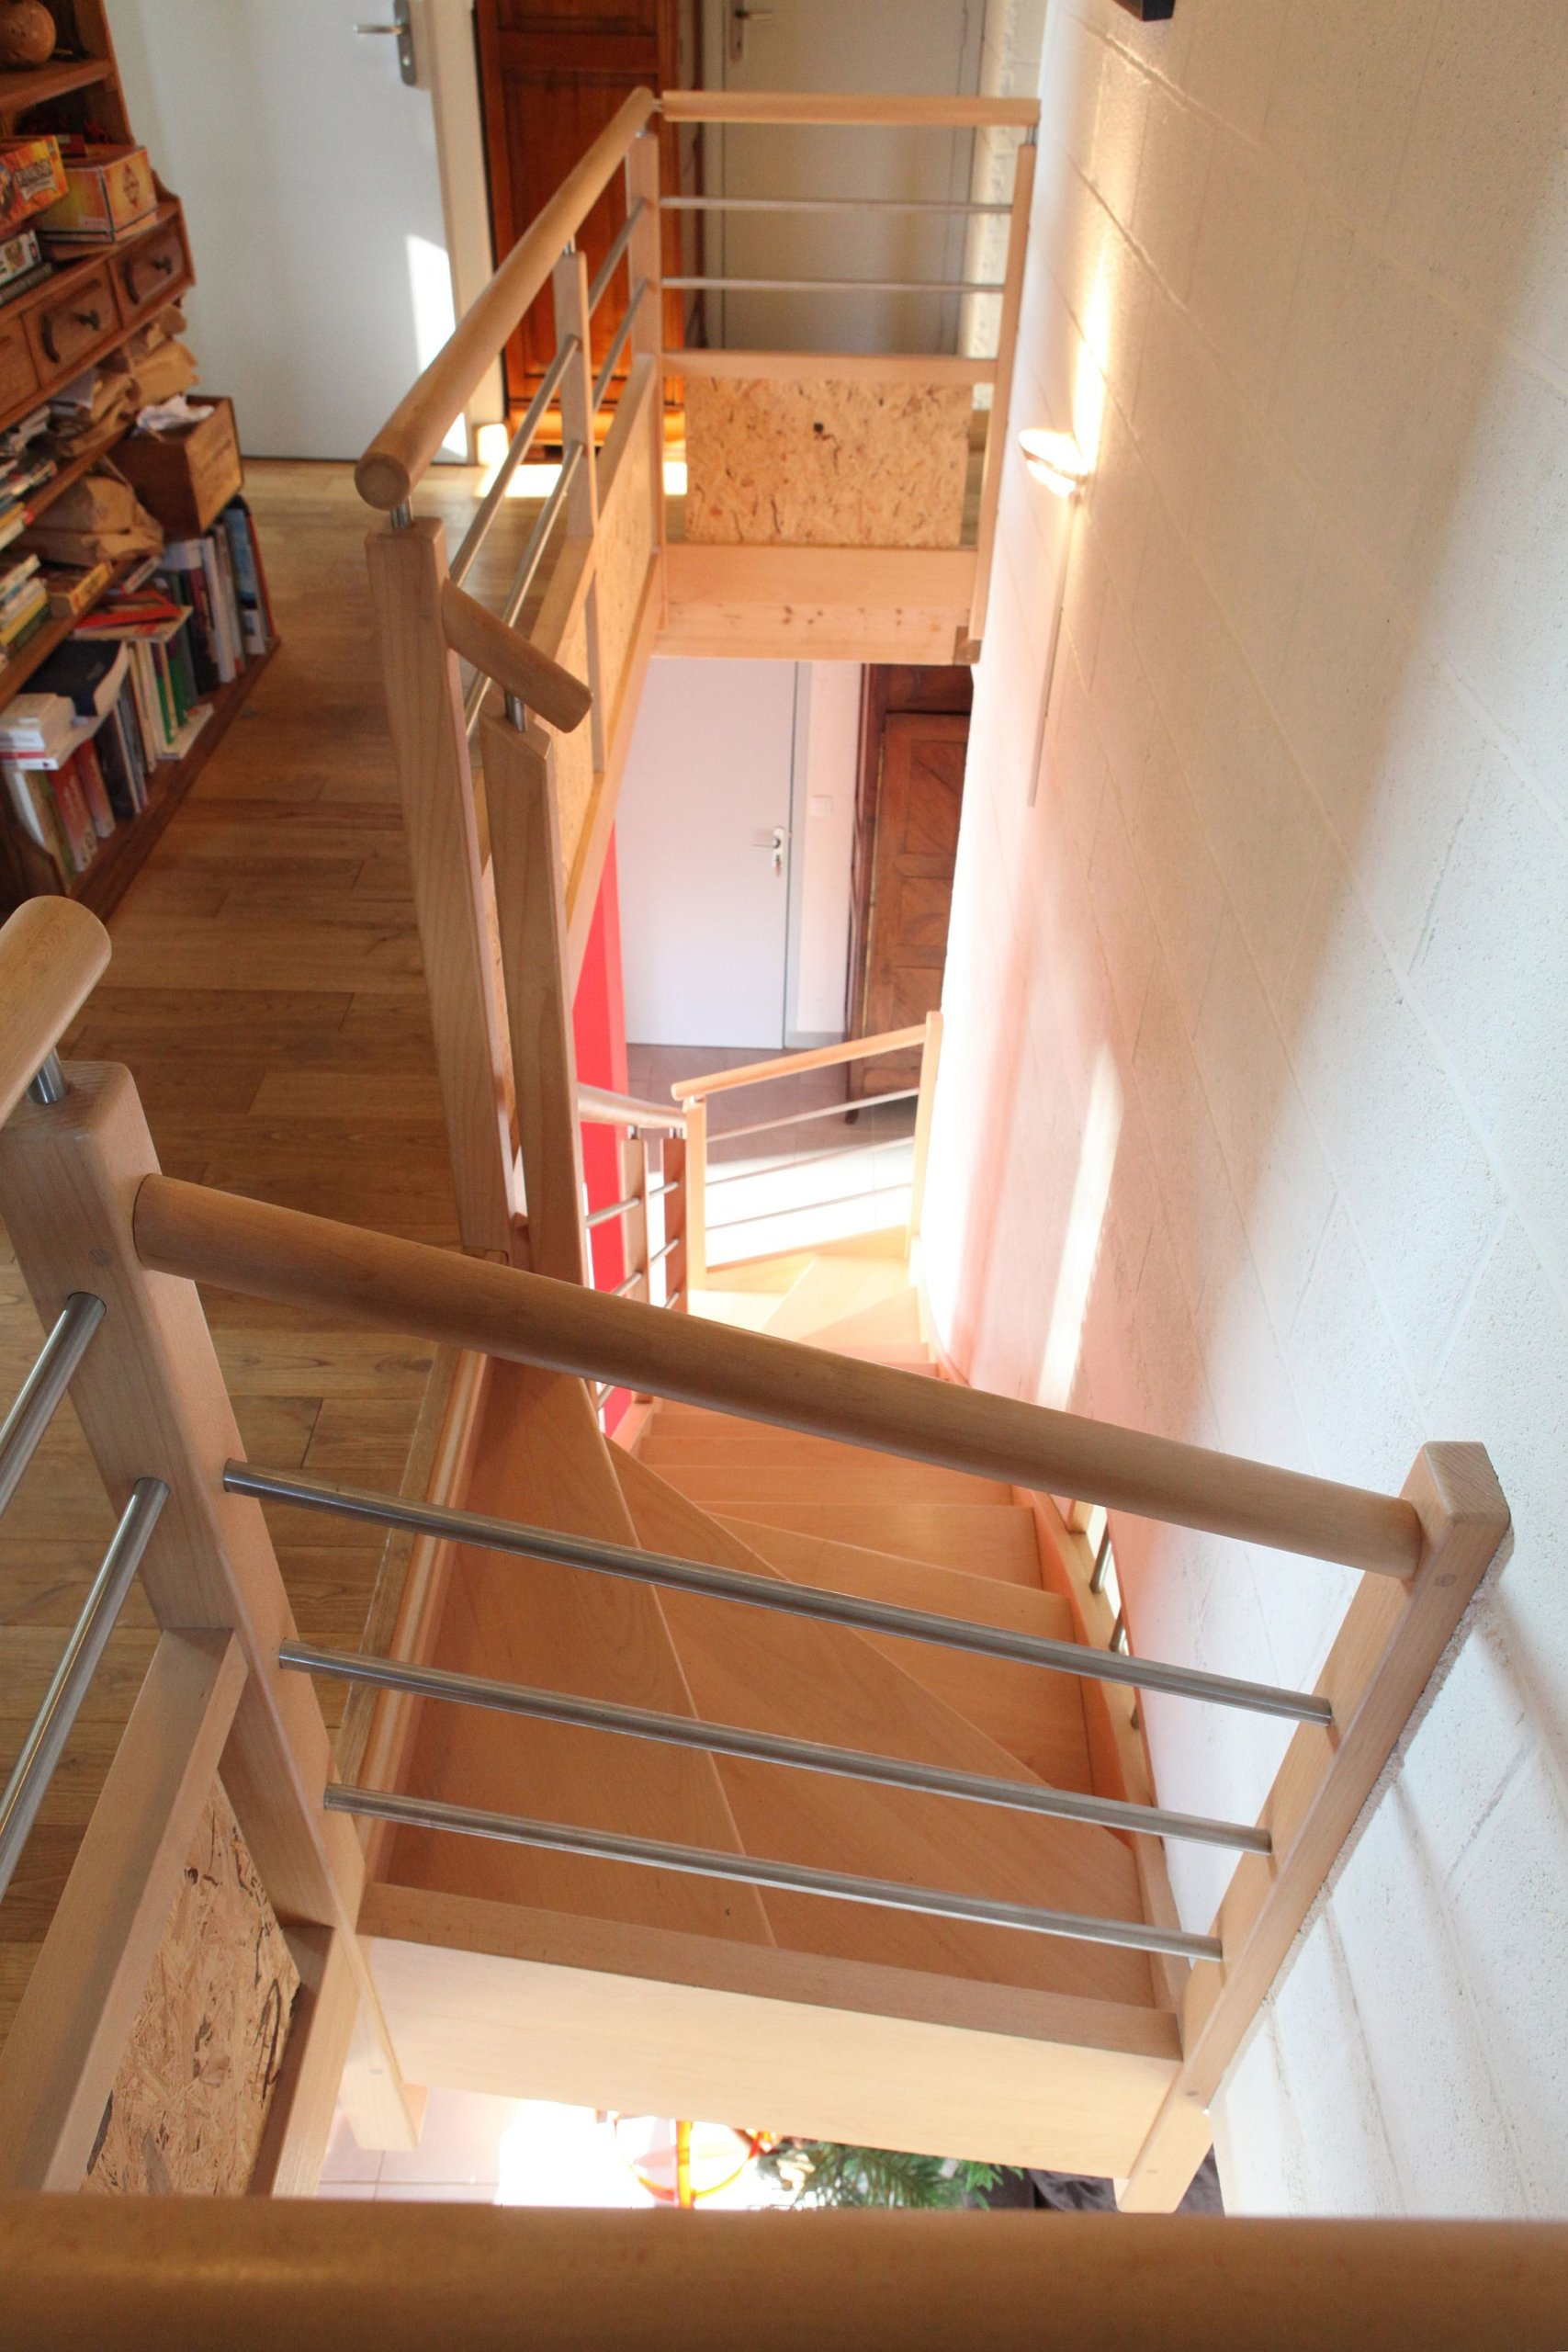 Staircase connecting different levels of the house